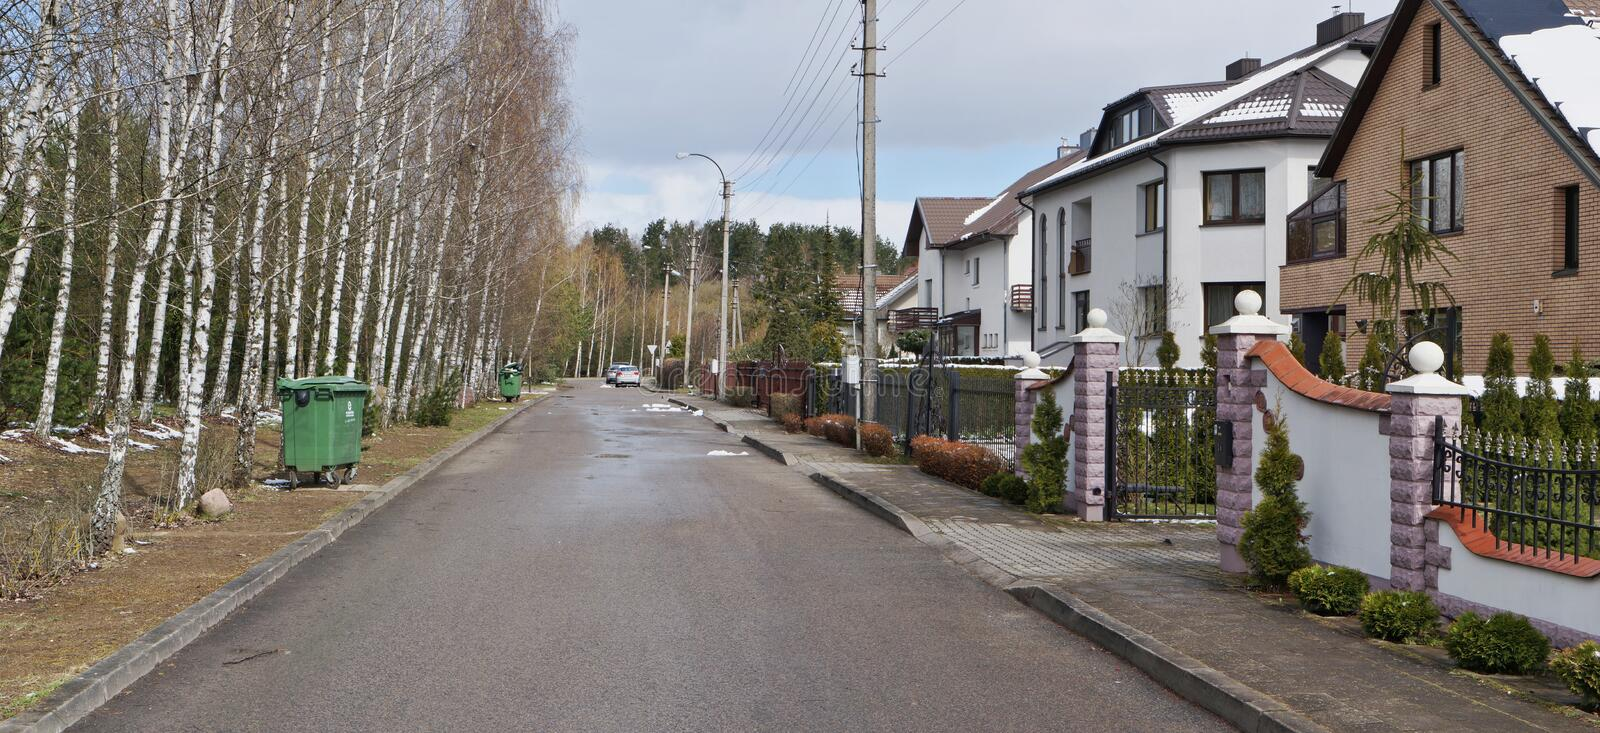 Birches trees and green trash cans near modern rural houses stock image